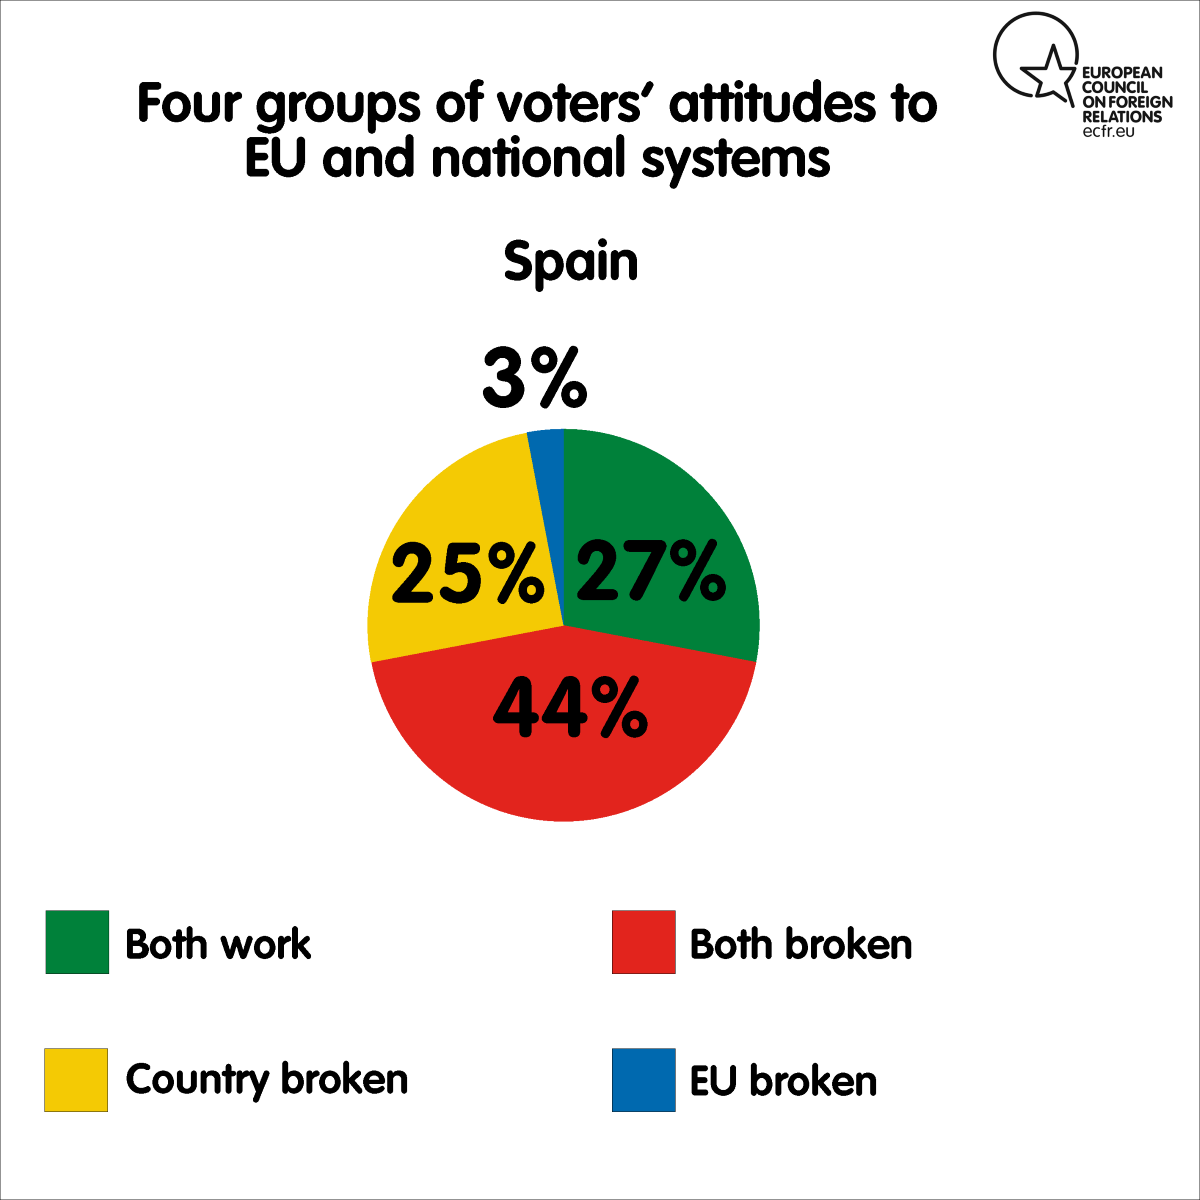 Four groups of voters' attitudes to EU and national systems in Spain